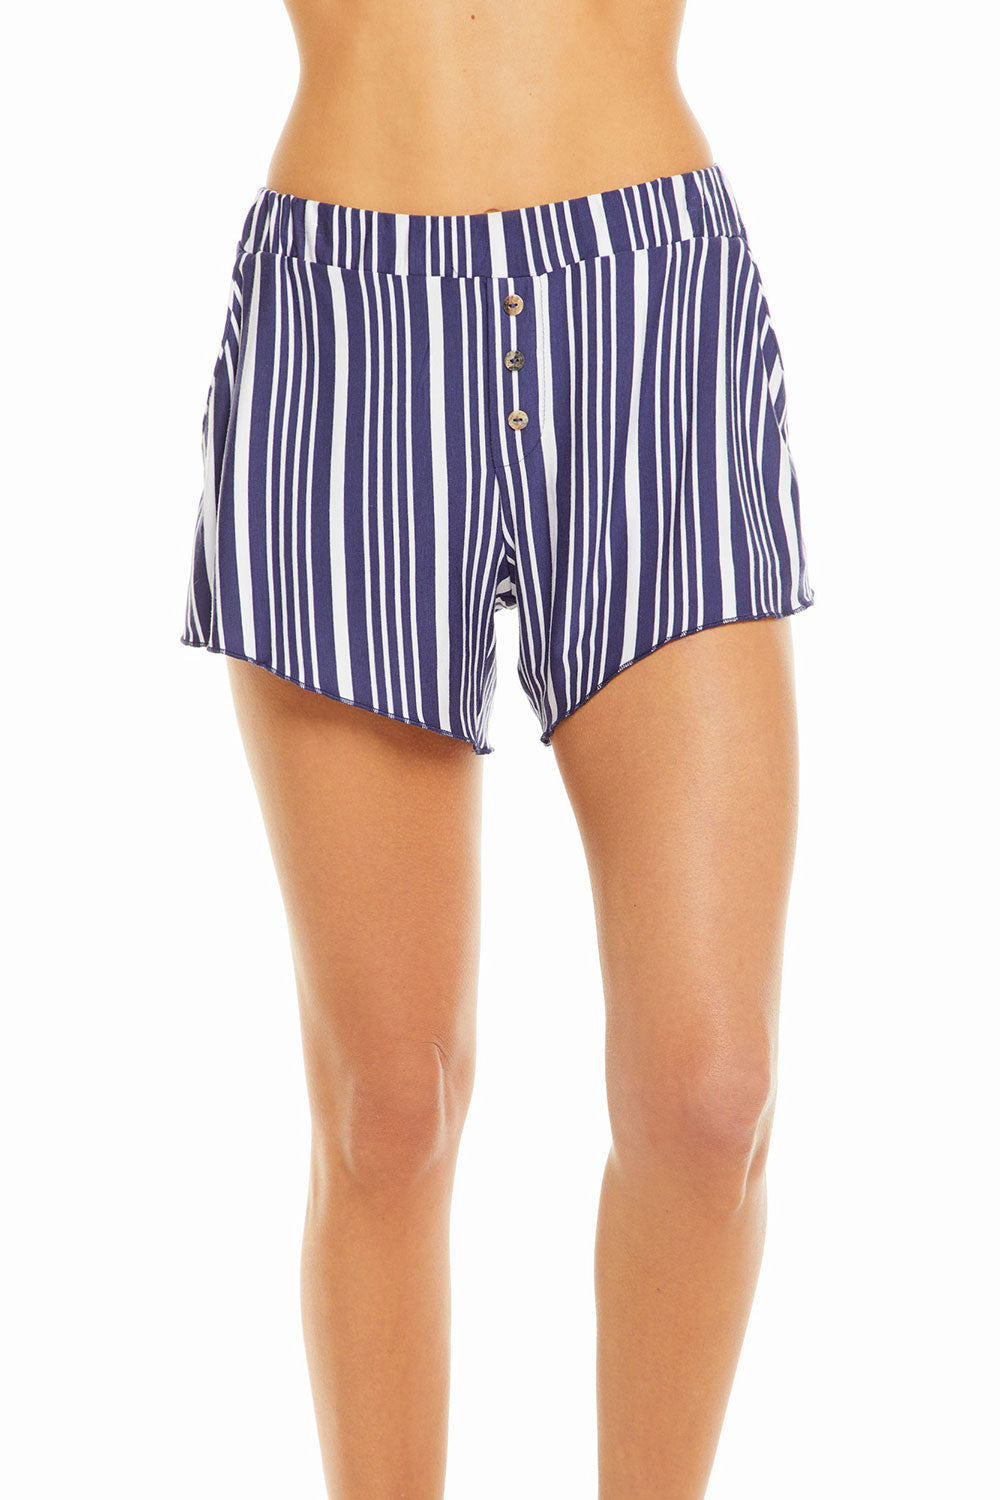 Cool Jersey Lounge Shorts WOMENS chaserbrand4.myshopify.com